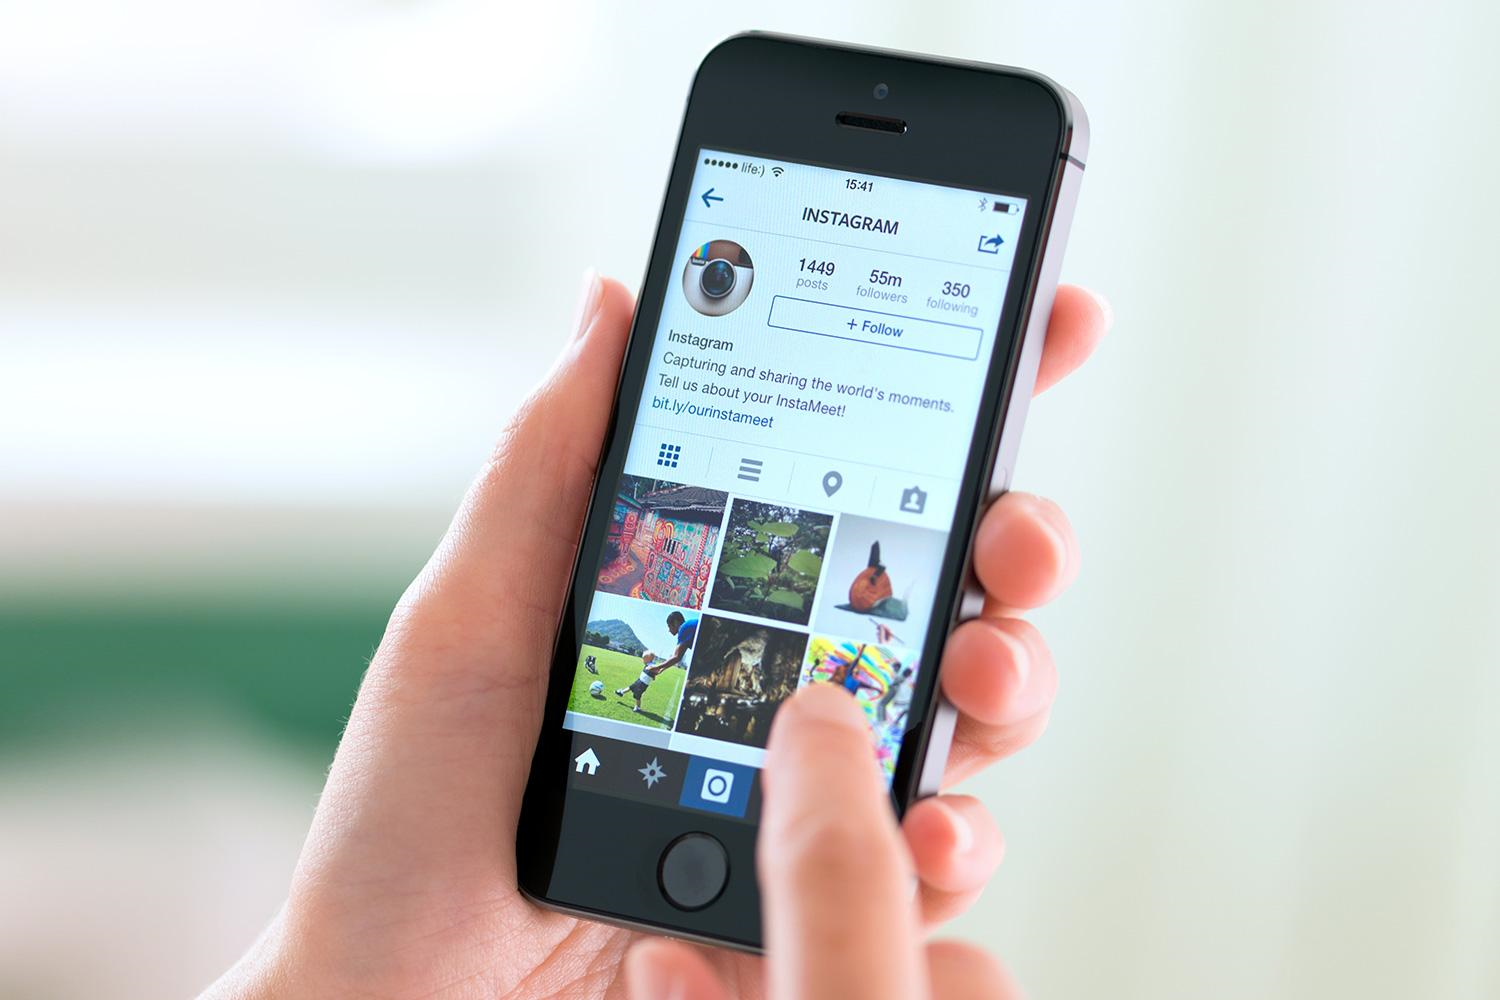 Instagram Adds a New Functionality Called Keyword Search